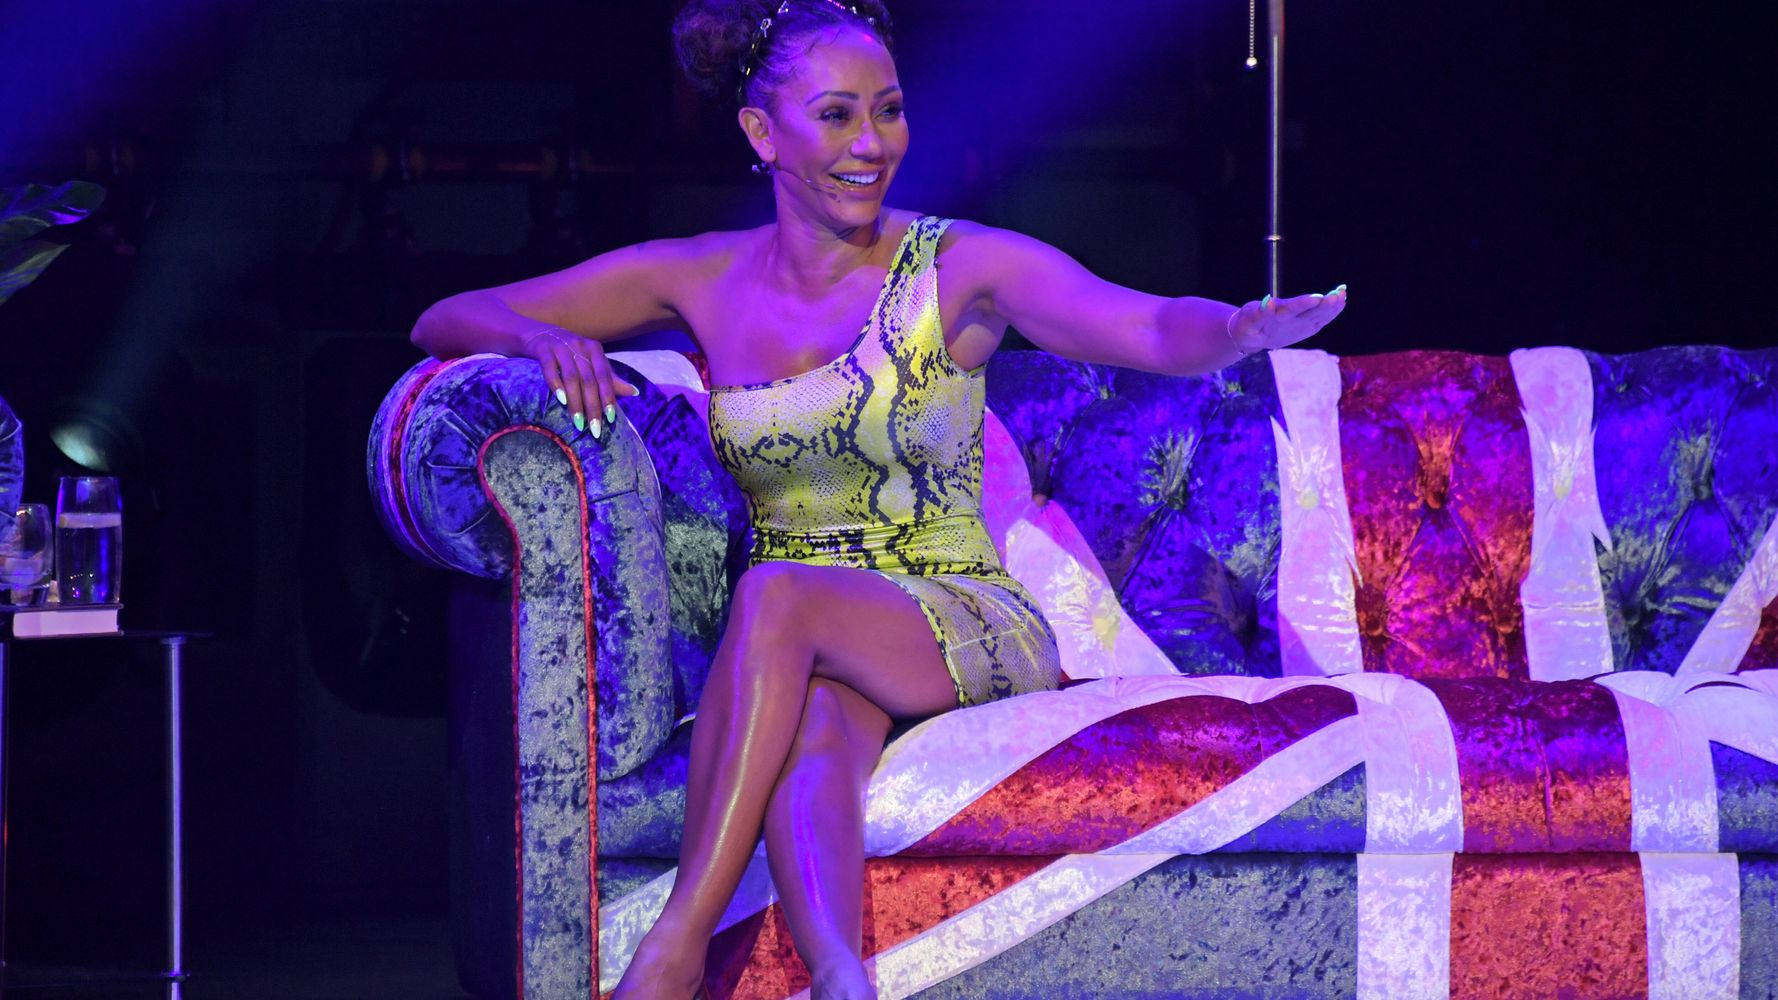 If You Wanna Be Her Lover, Mel B's Going To Take You To The STI Clinic First